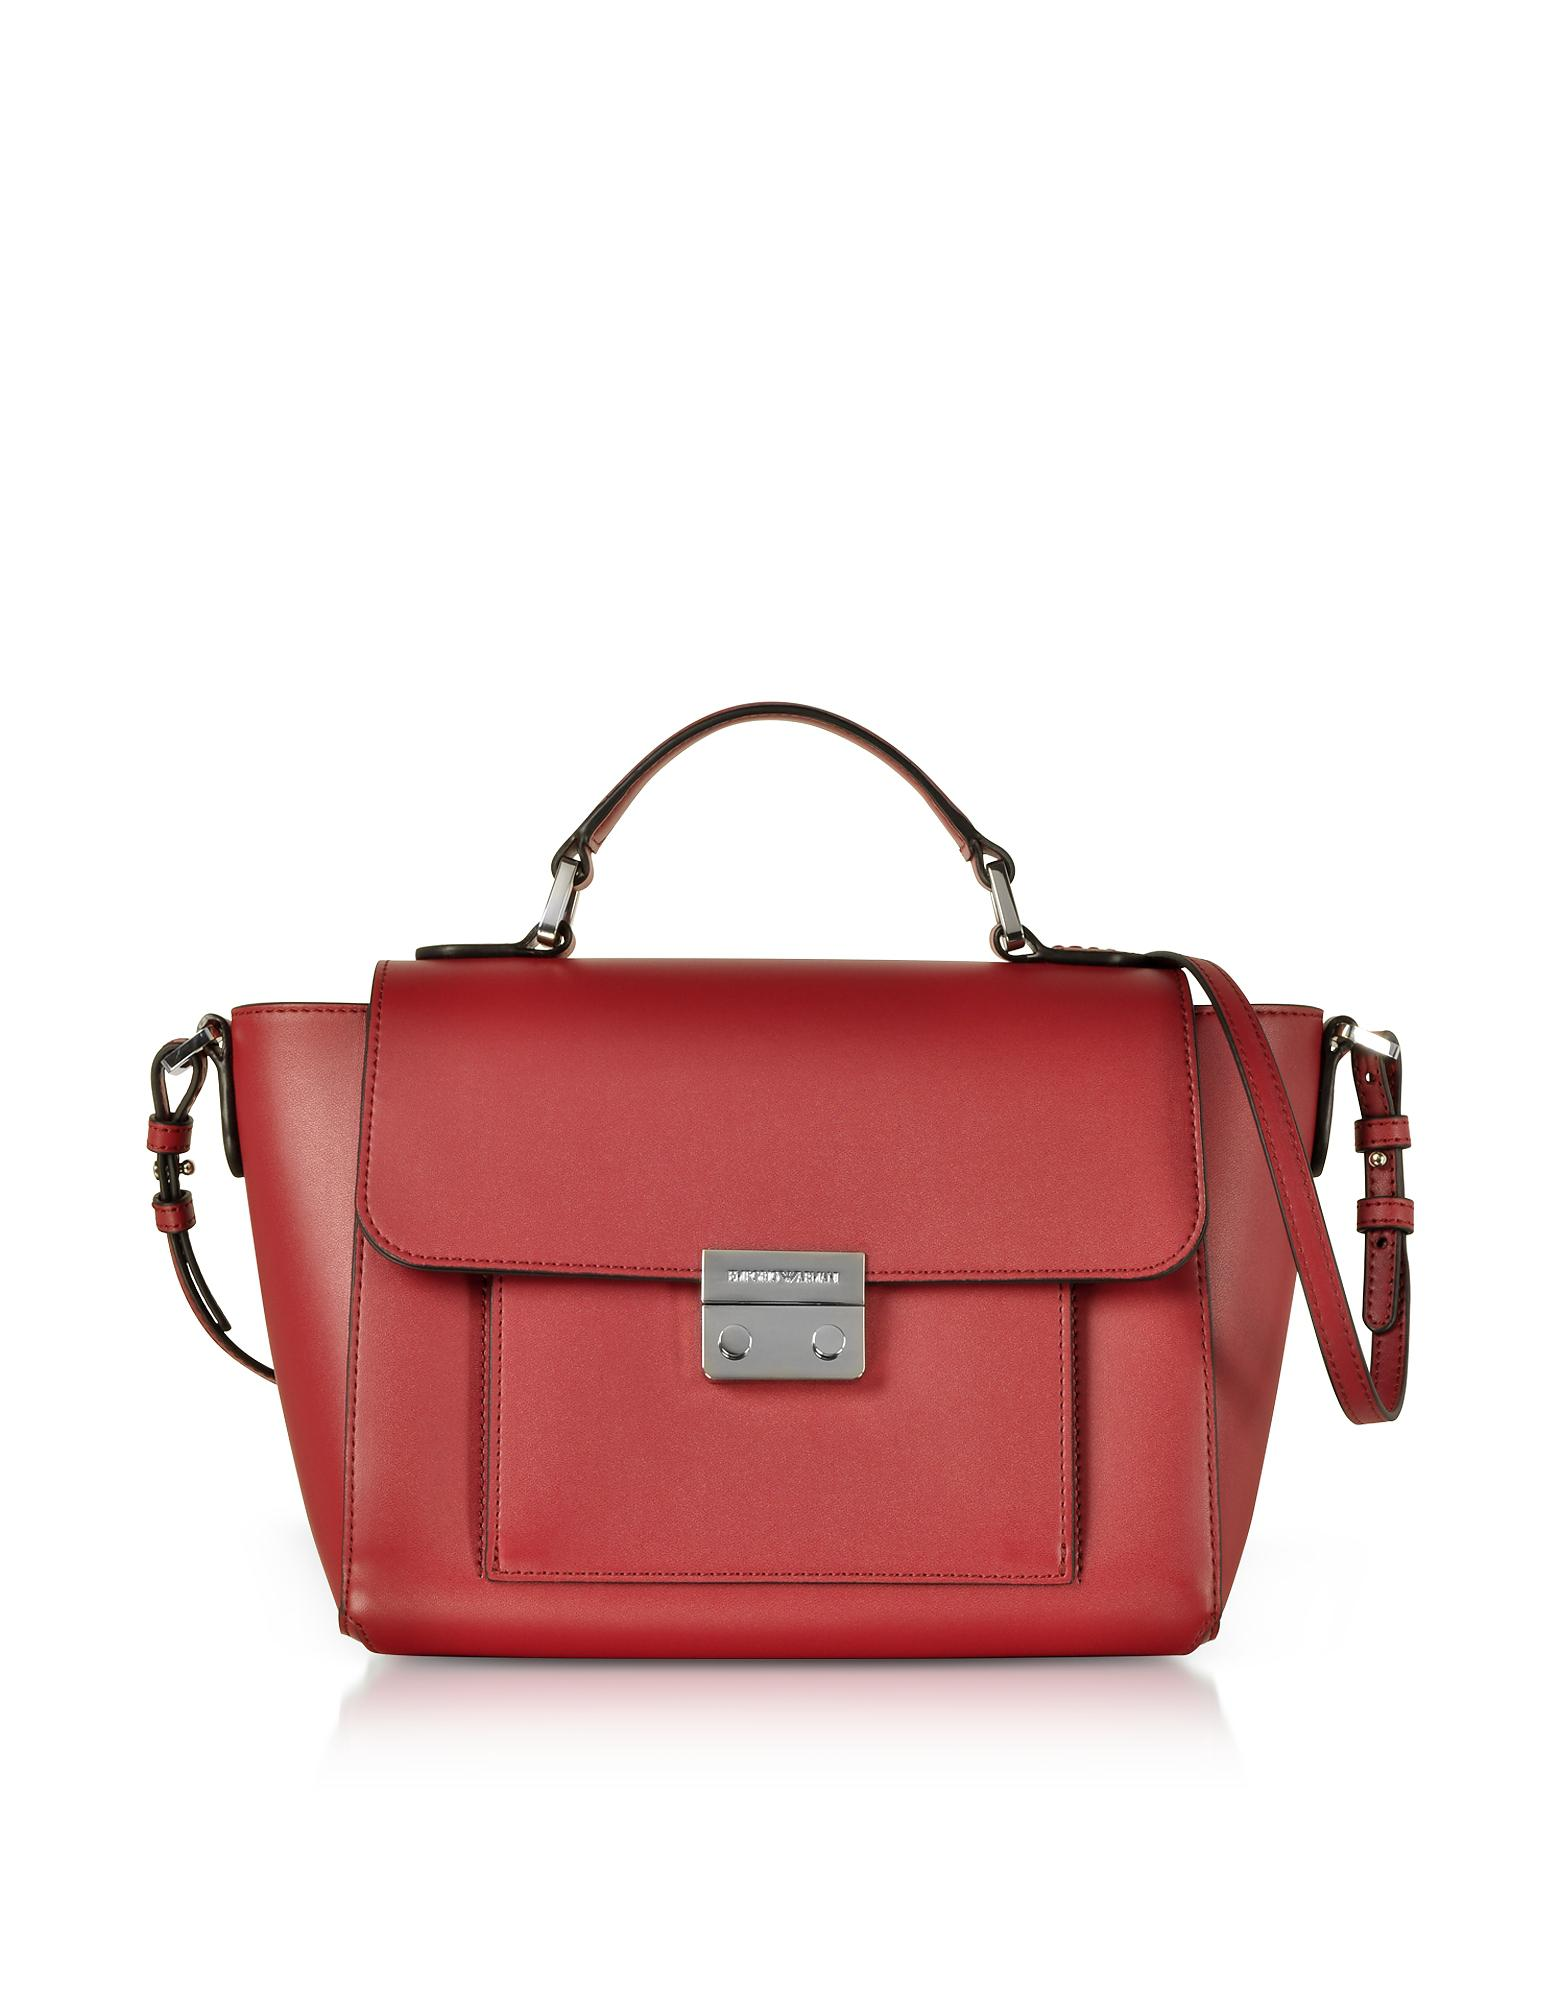 2ea467f718f Emporio Armani Smooth Leather Top-handle Shoulder Bag in Red - Lyst